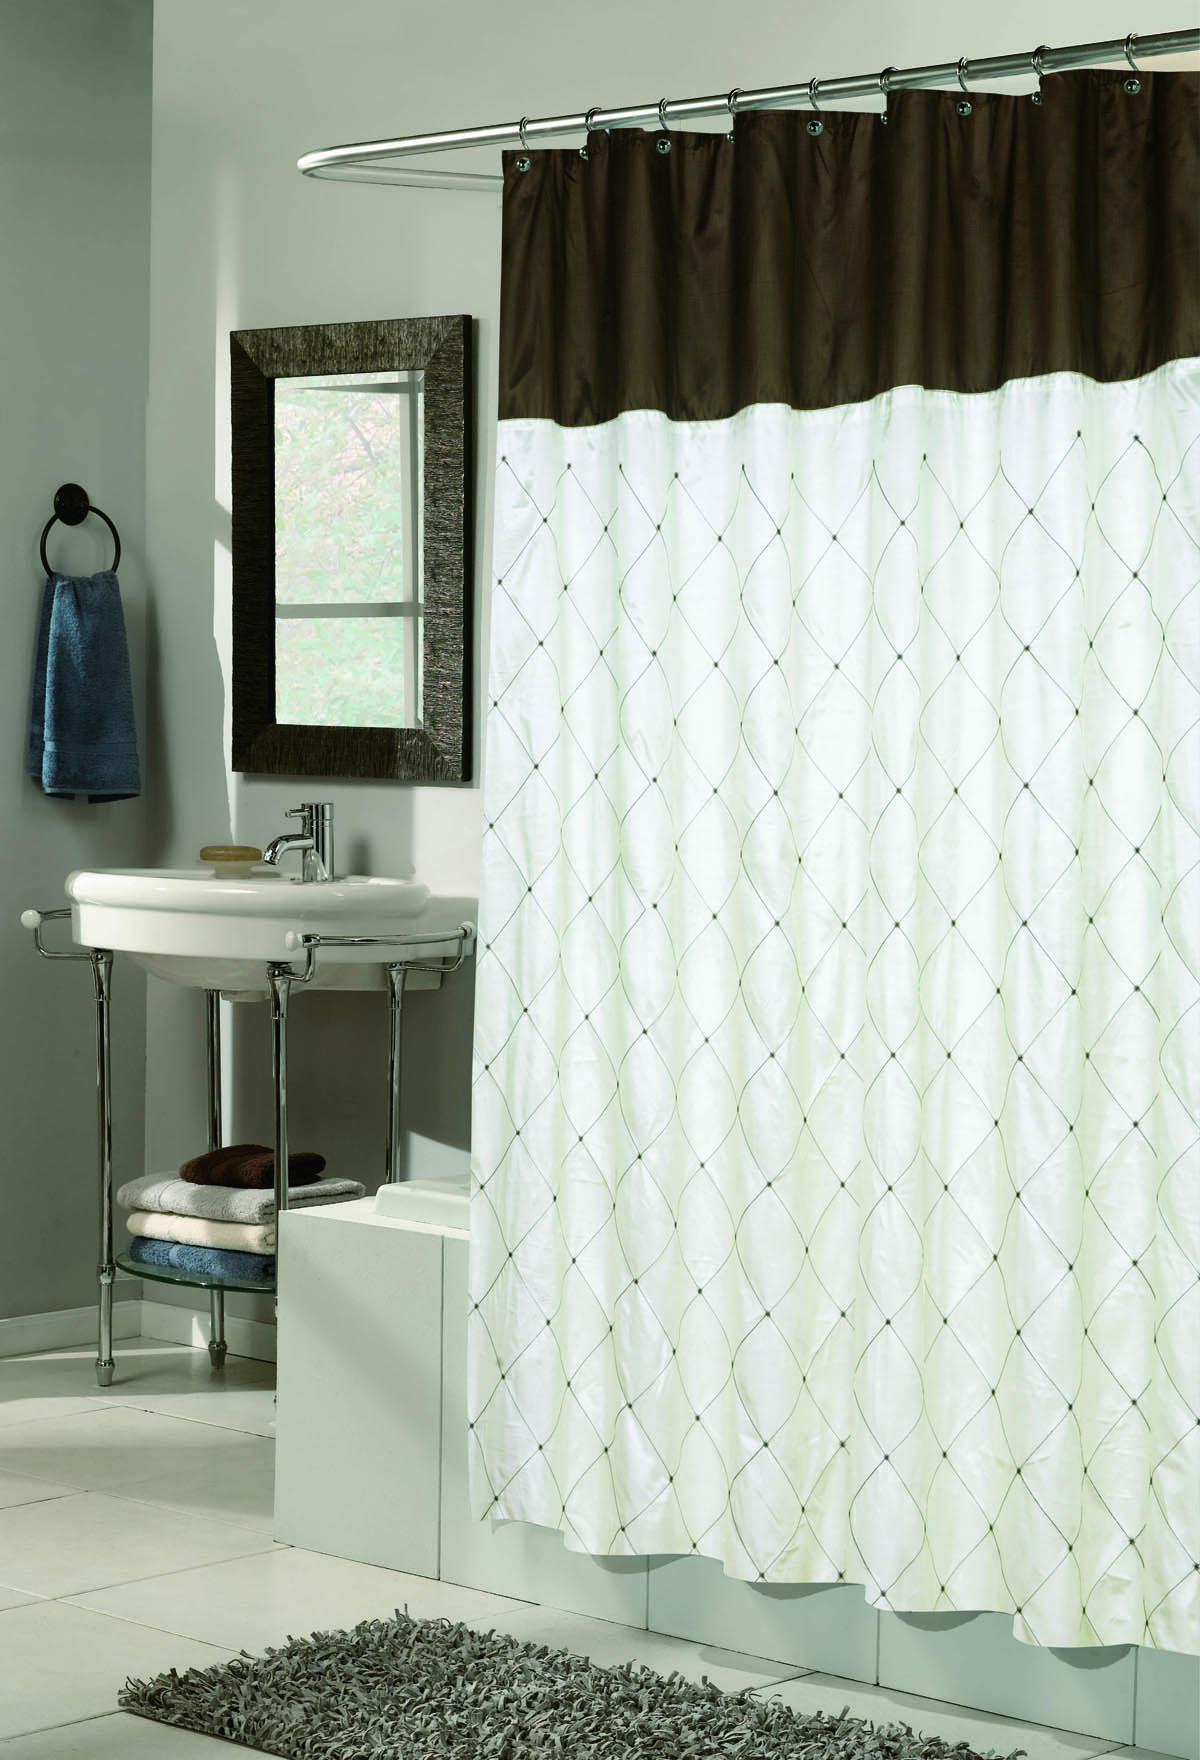 Carnation Home Fashions, Inc - Diamond Embroidered Shower Curtains